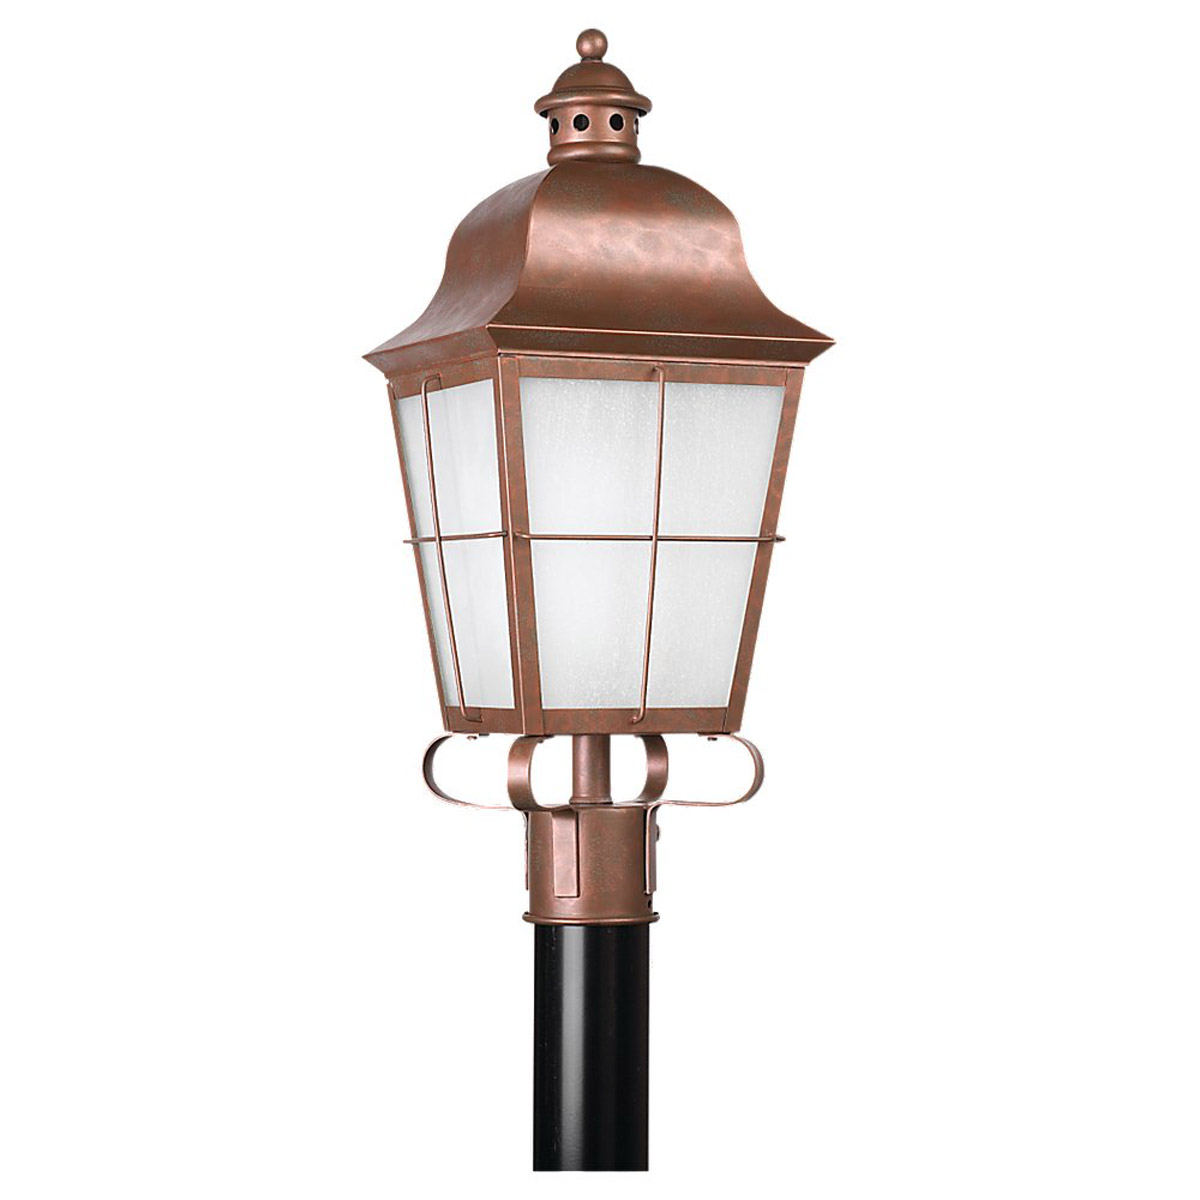 Sea Gull 82973BL-44 Chatham 1 Light 23 inch Weathered Copper Outdoor Post Lantern in No Photocell photo